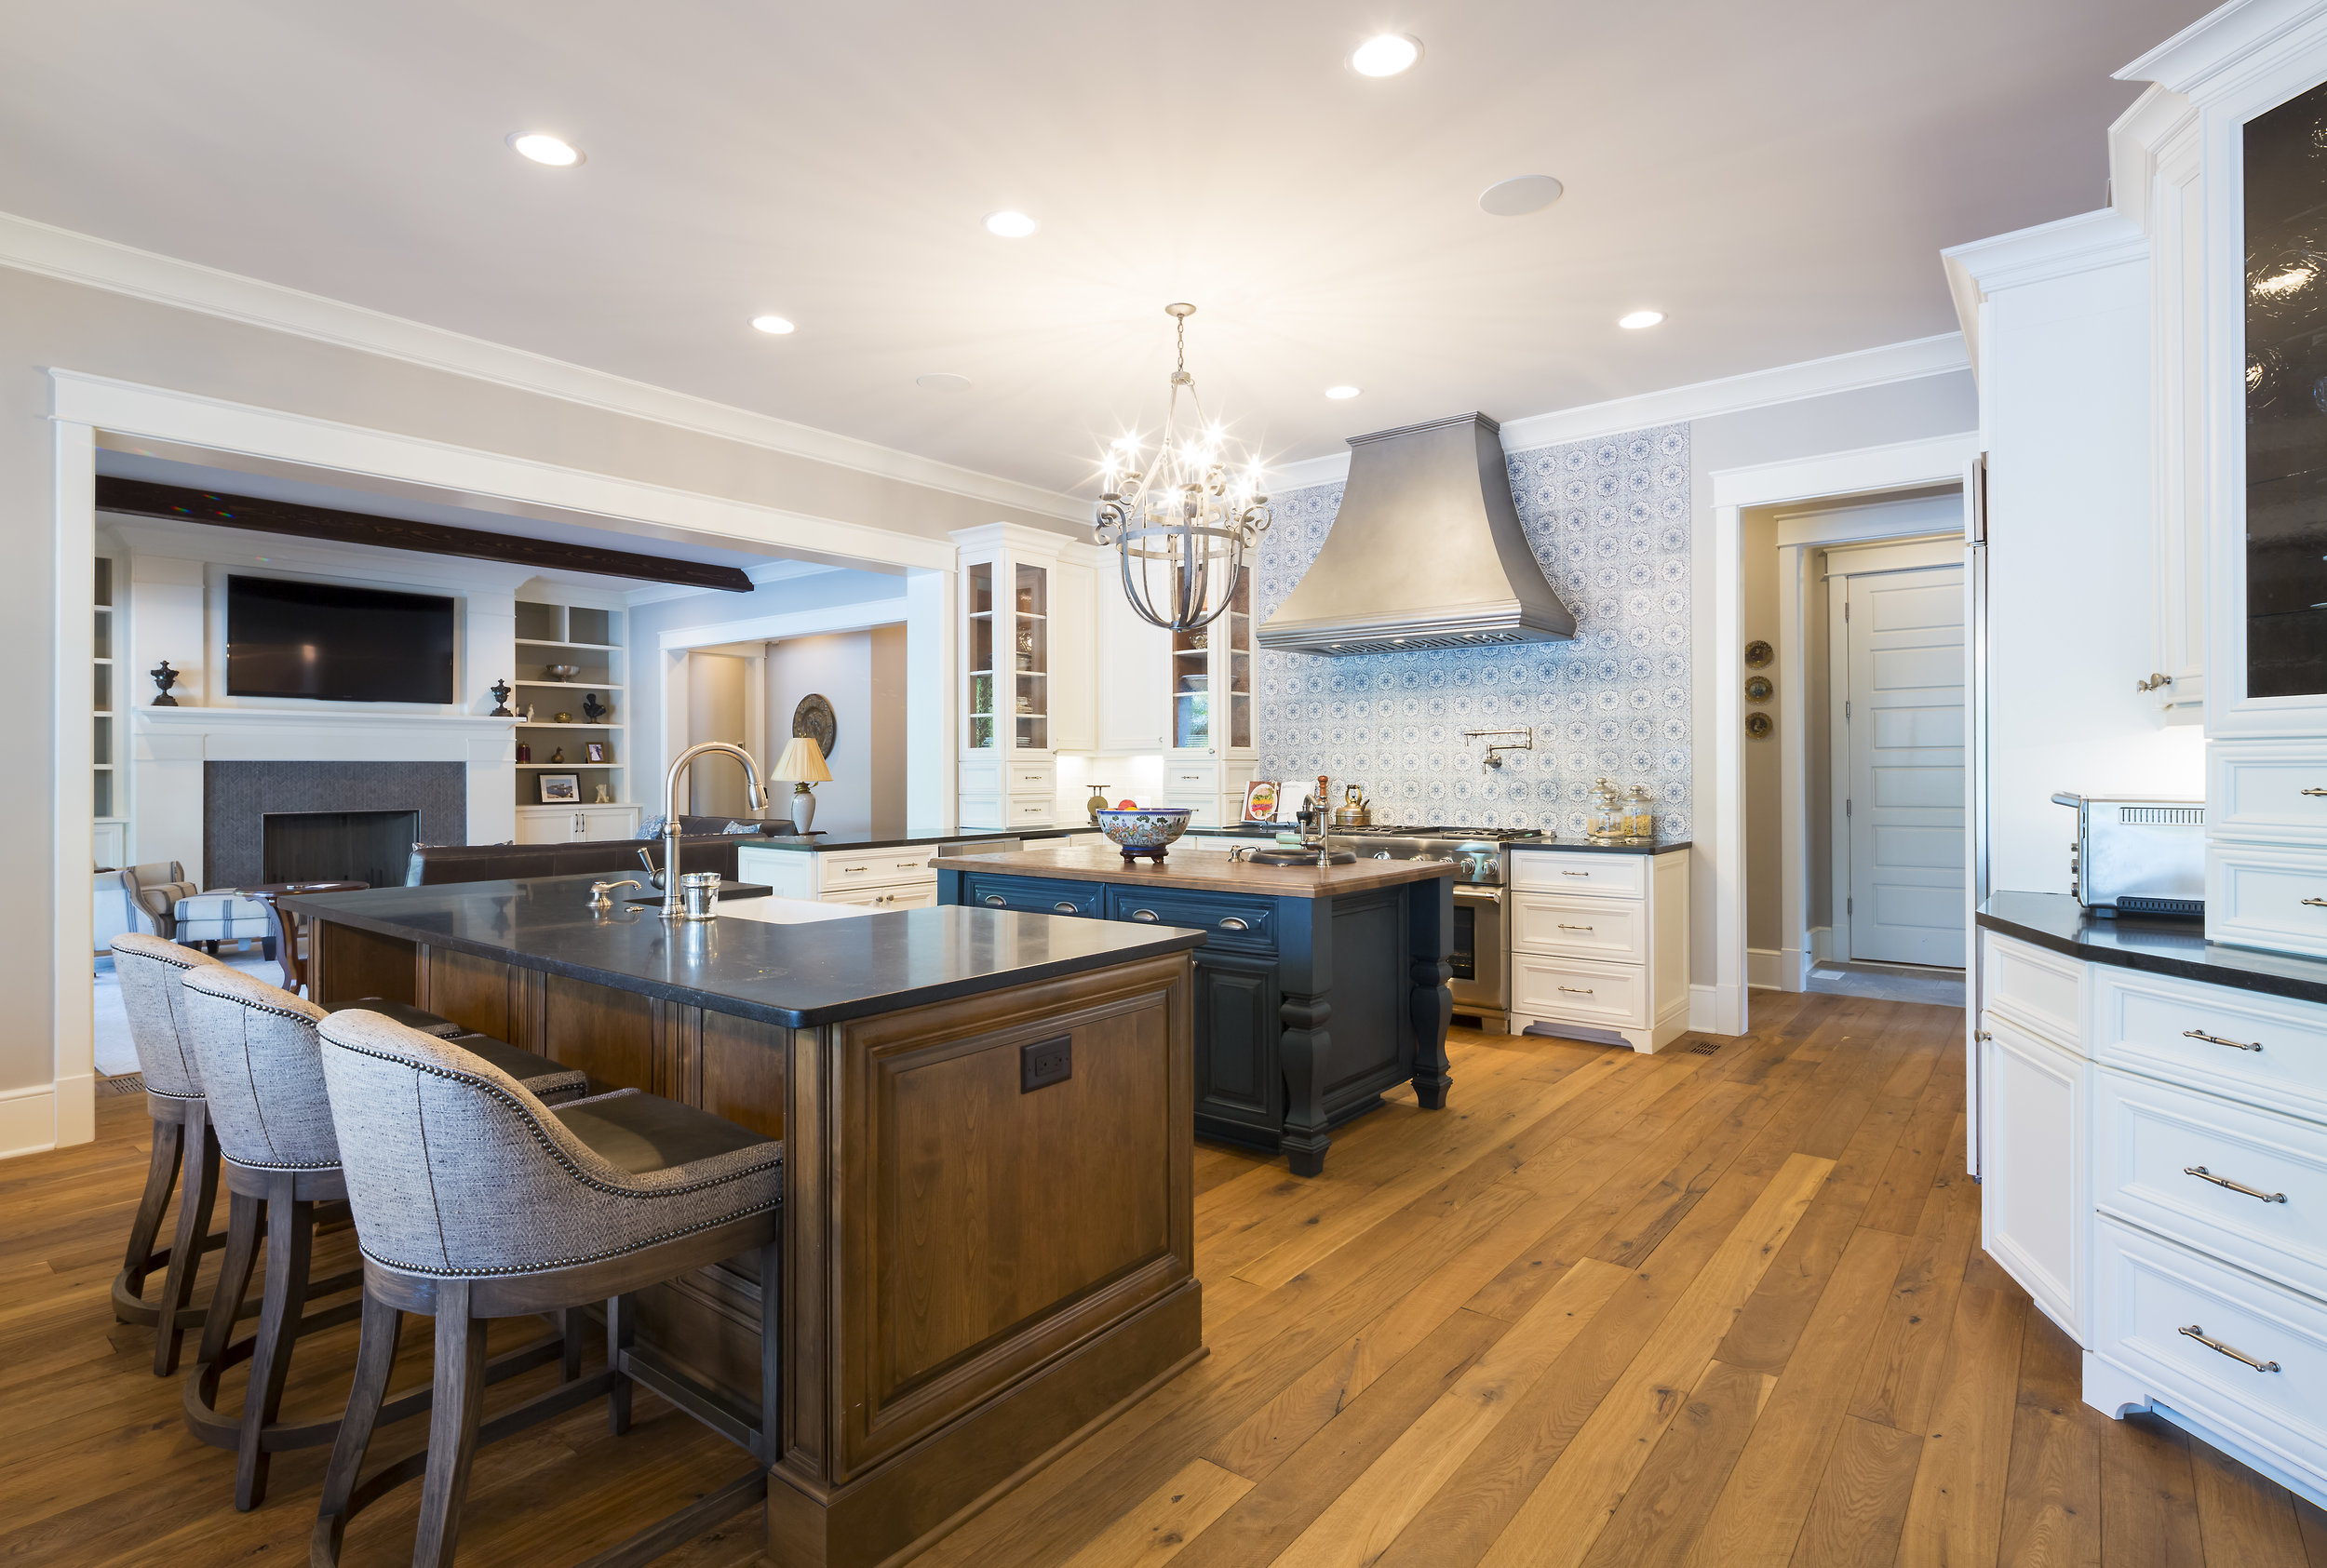 Artisan Custom Homes_Hudson Pl_ Mayfair Rd_20160908-69.jpg